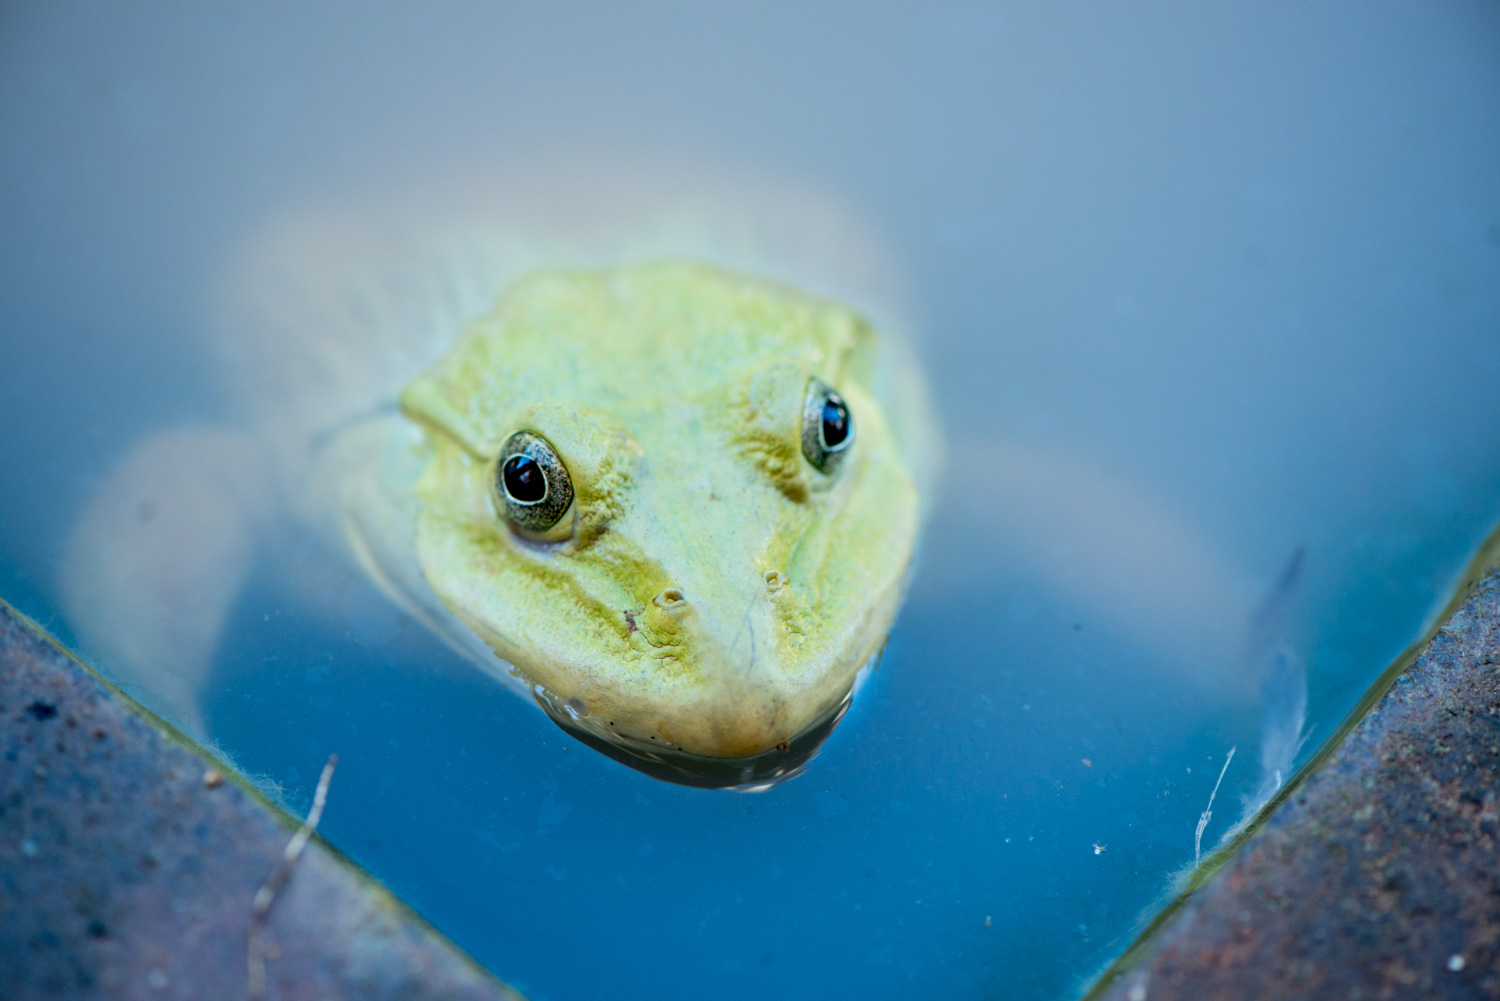 ©Kevin Landwer-Johan frog sitting the a pond close up